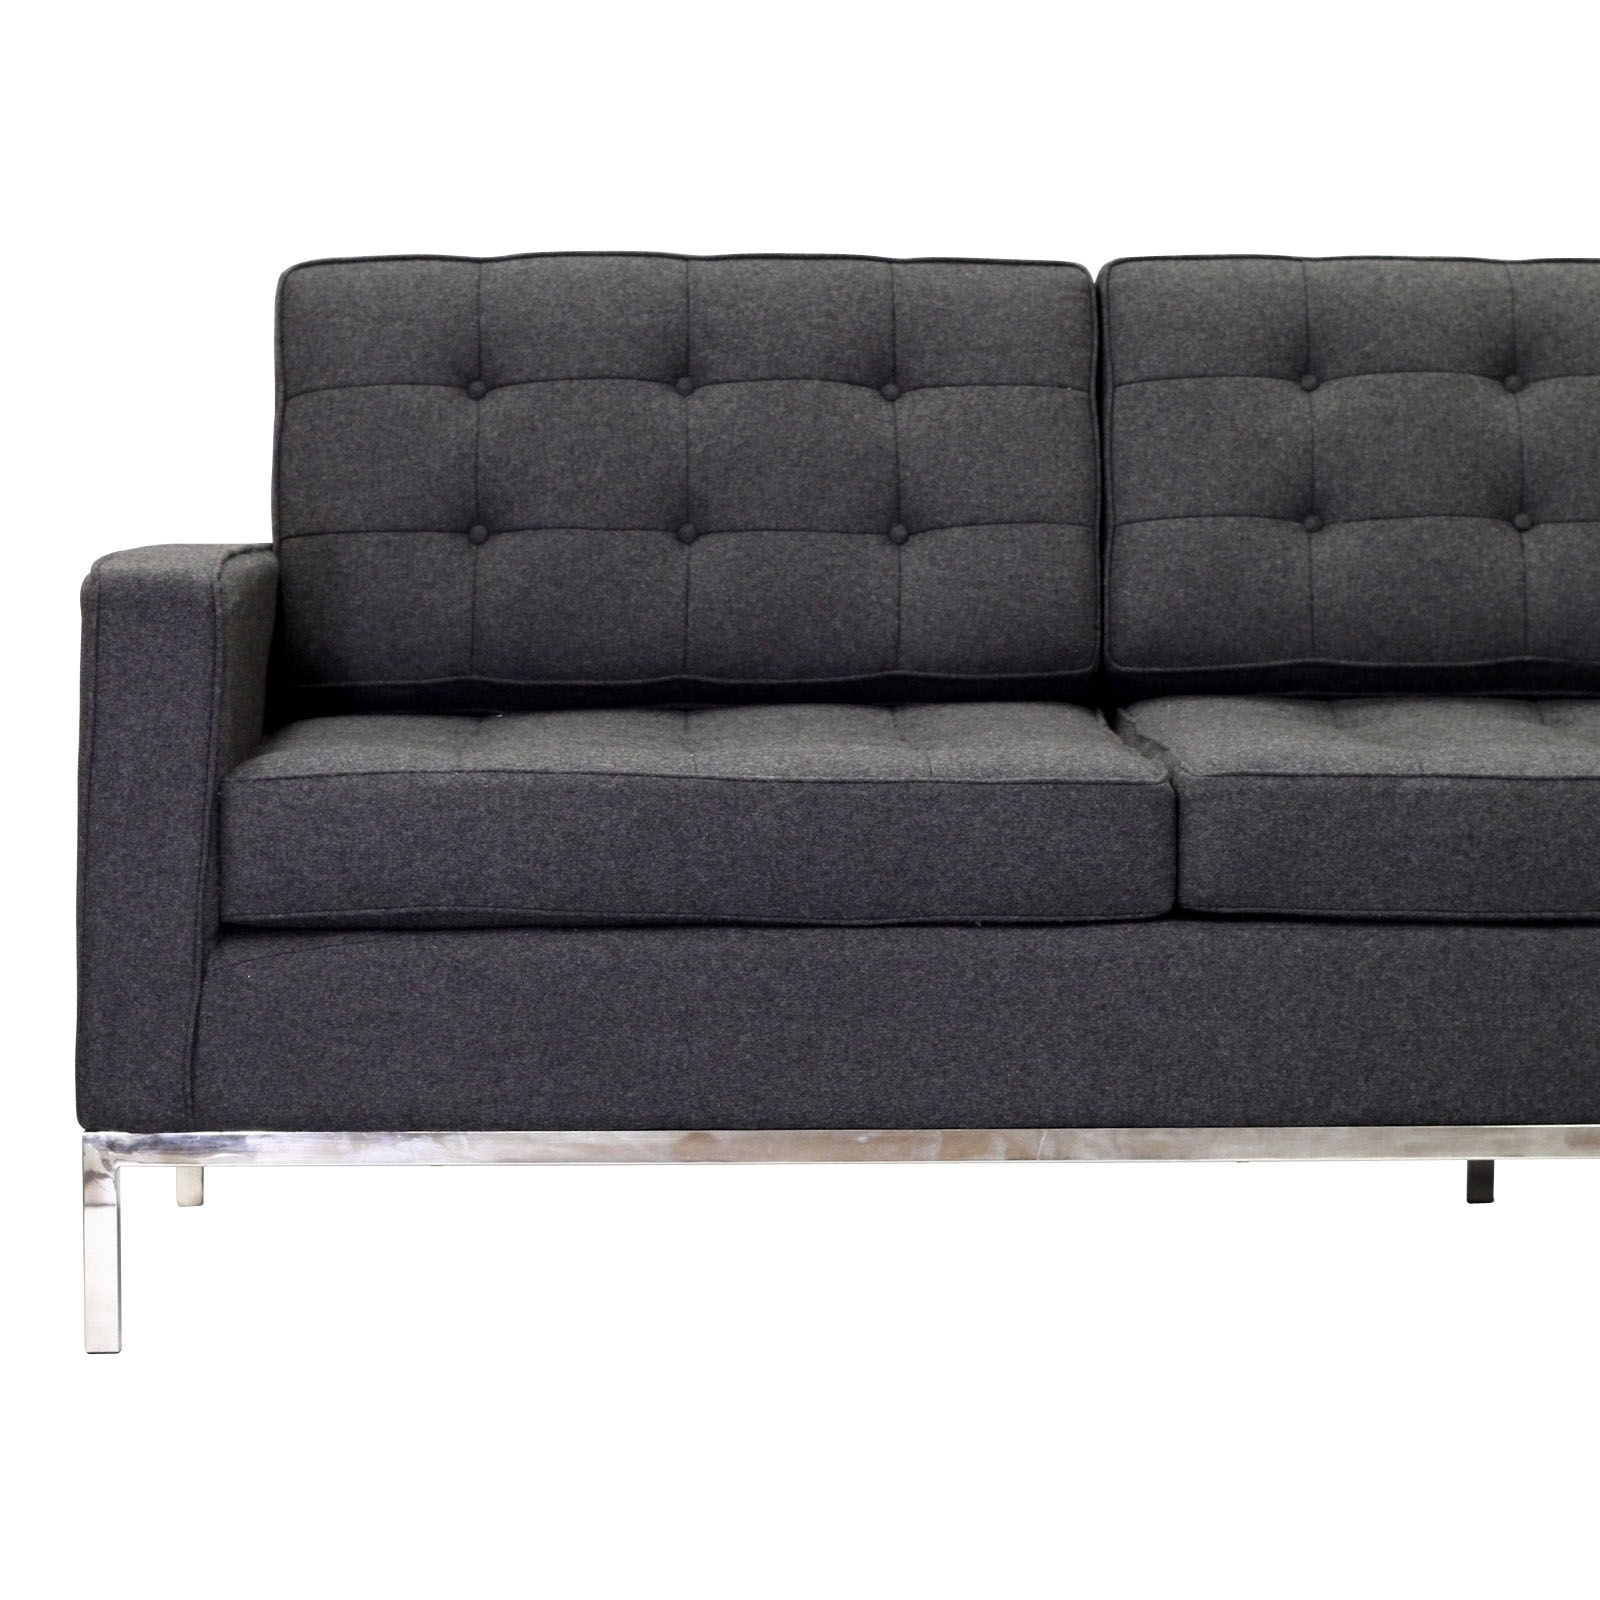 contemporary tufted sofa sectional inspiration-Beautiful Tufted sofa Sectional Model